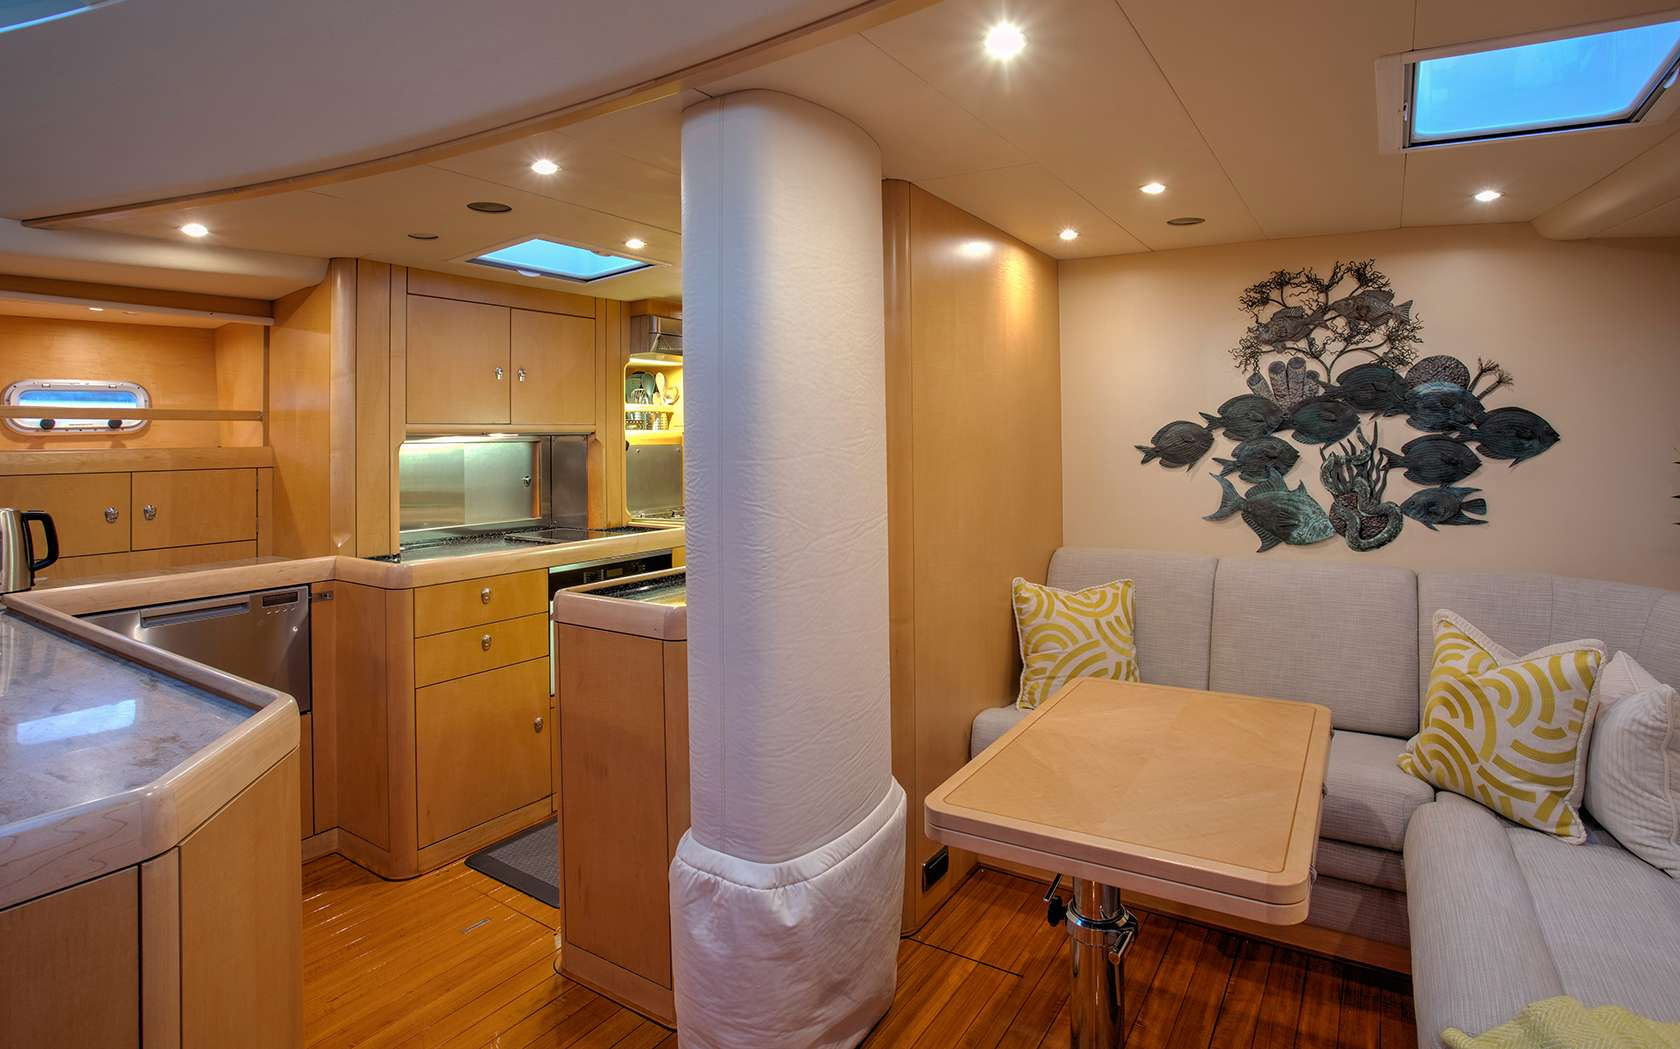 Sail Yacht 'Sail', 6 PAX, 3 Crew, 82.00 Ft, 25.00 Meters, Built 2008, Oyster Marine, Refit Year